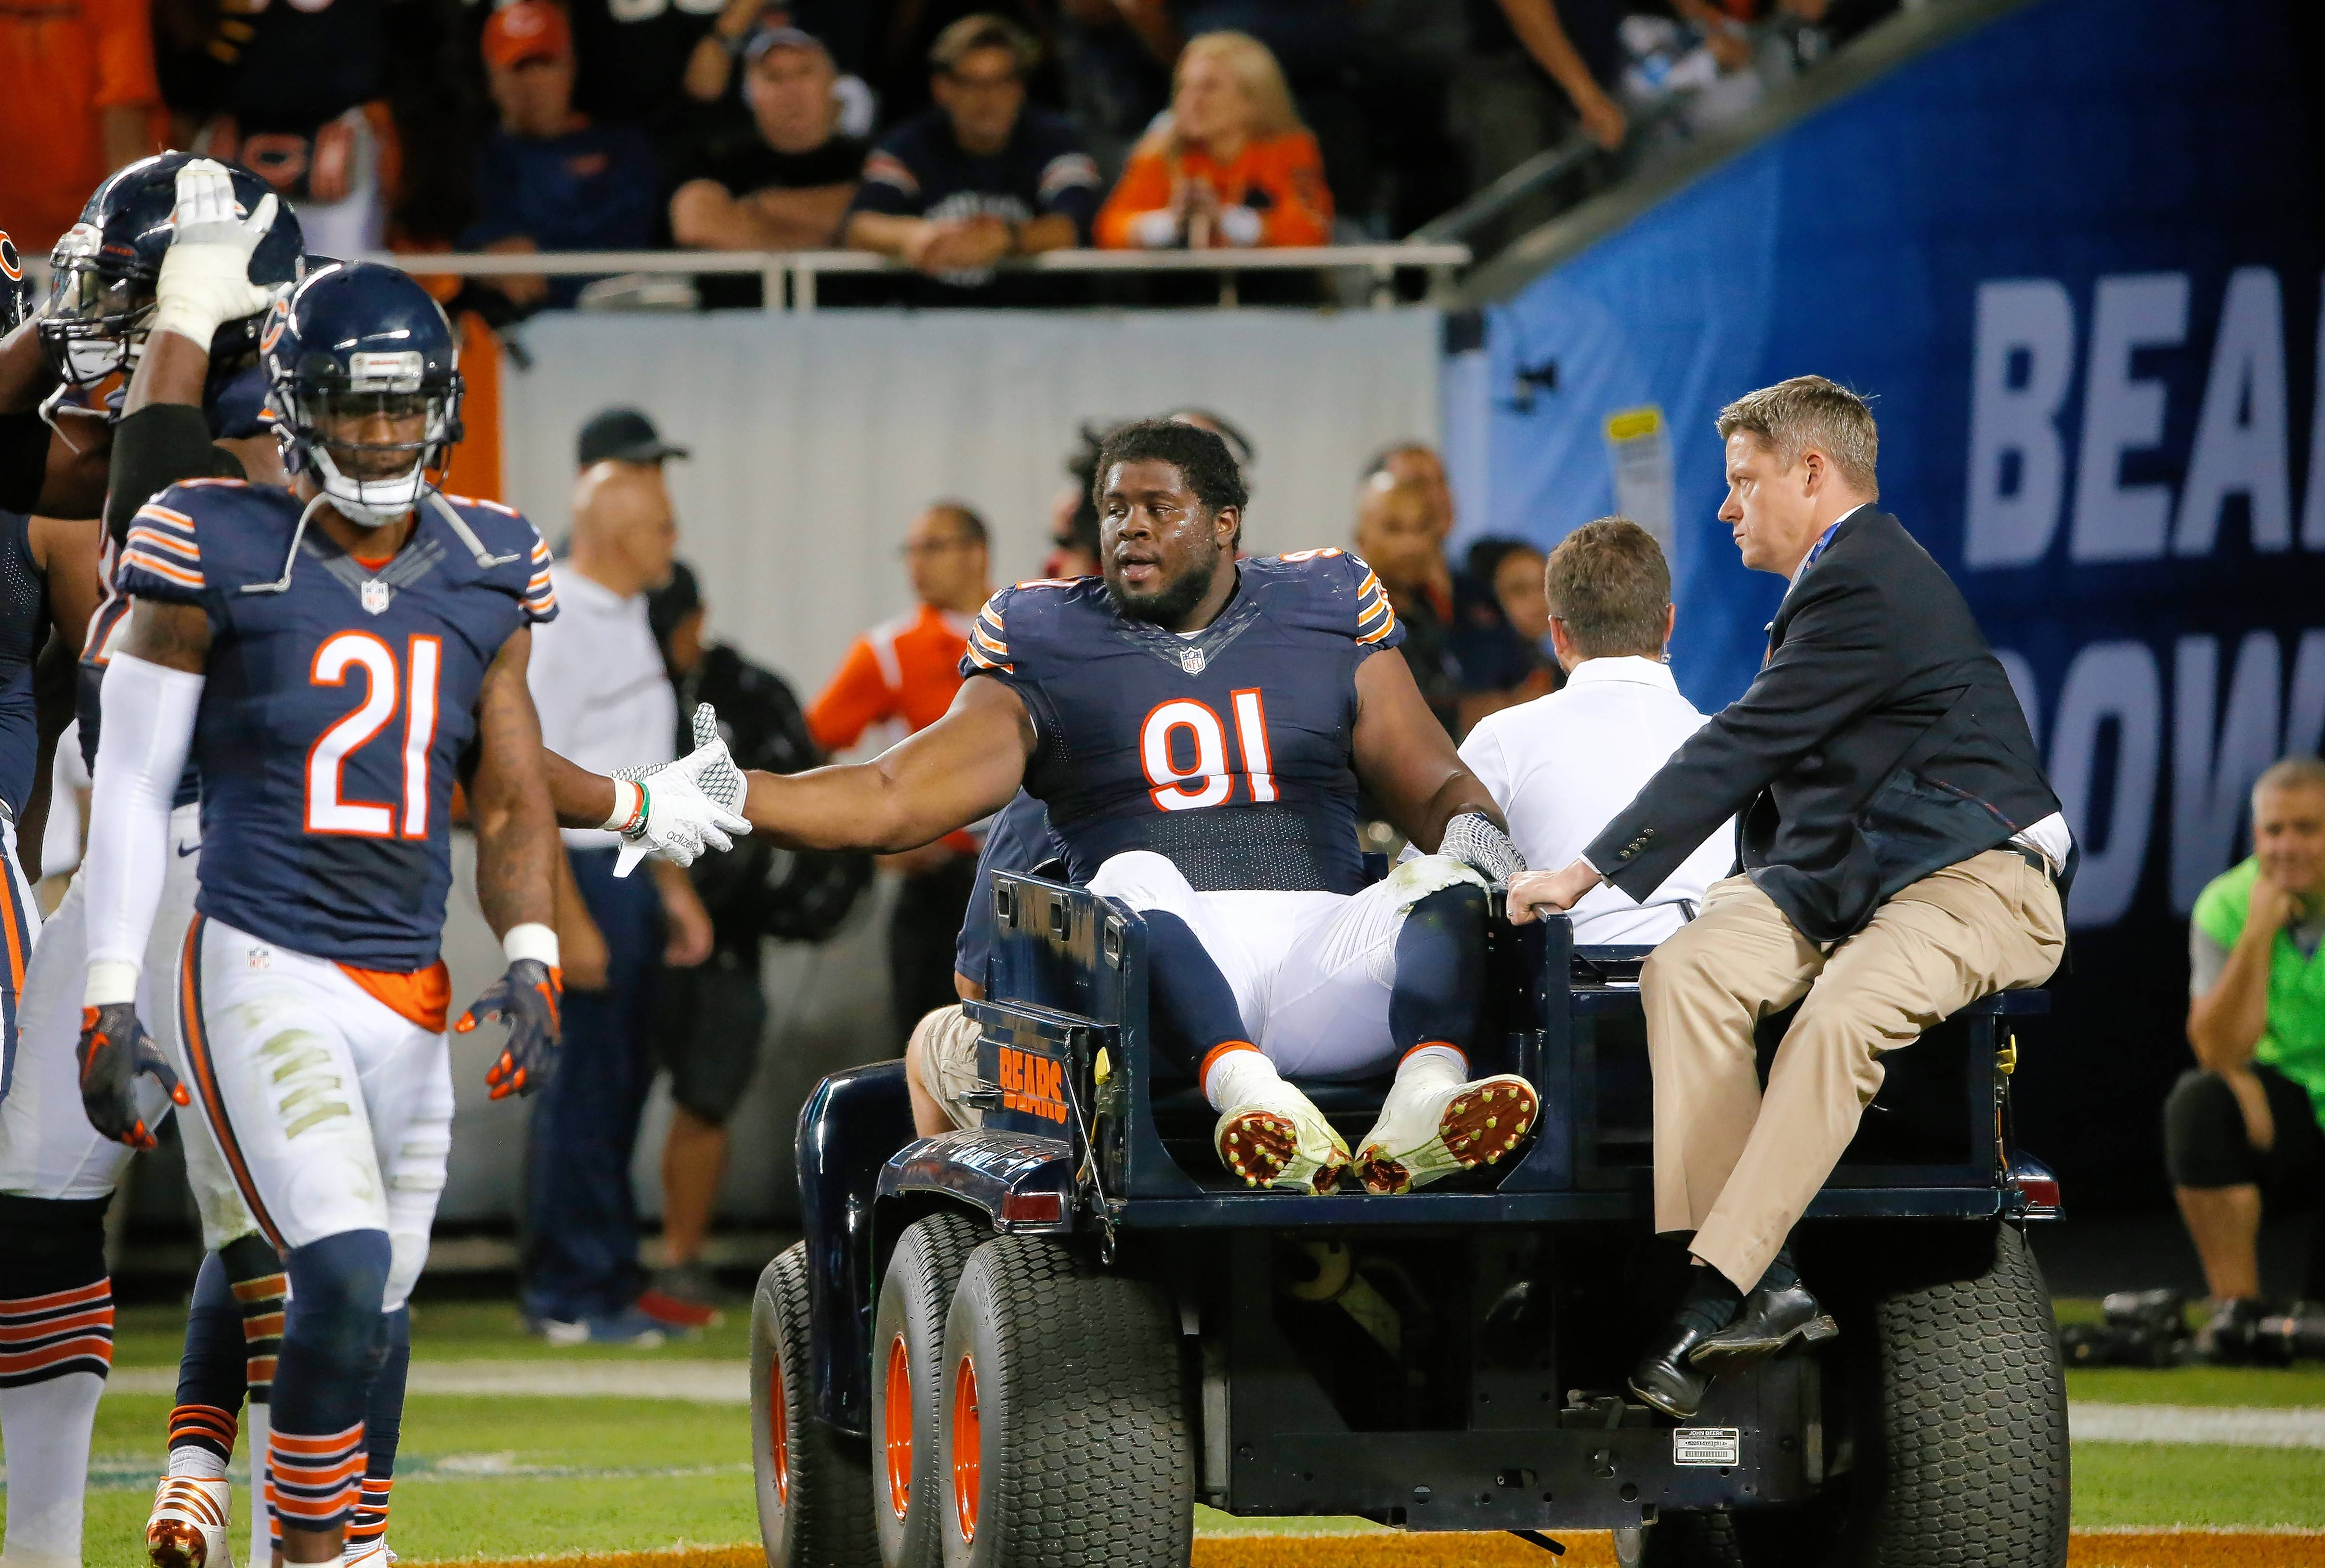 Injuries forcing Chicago Bears' defense to go young